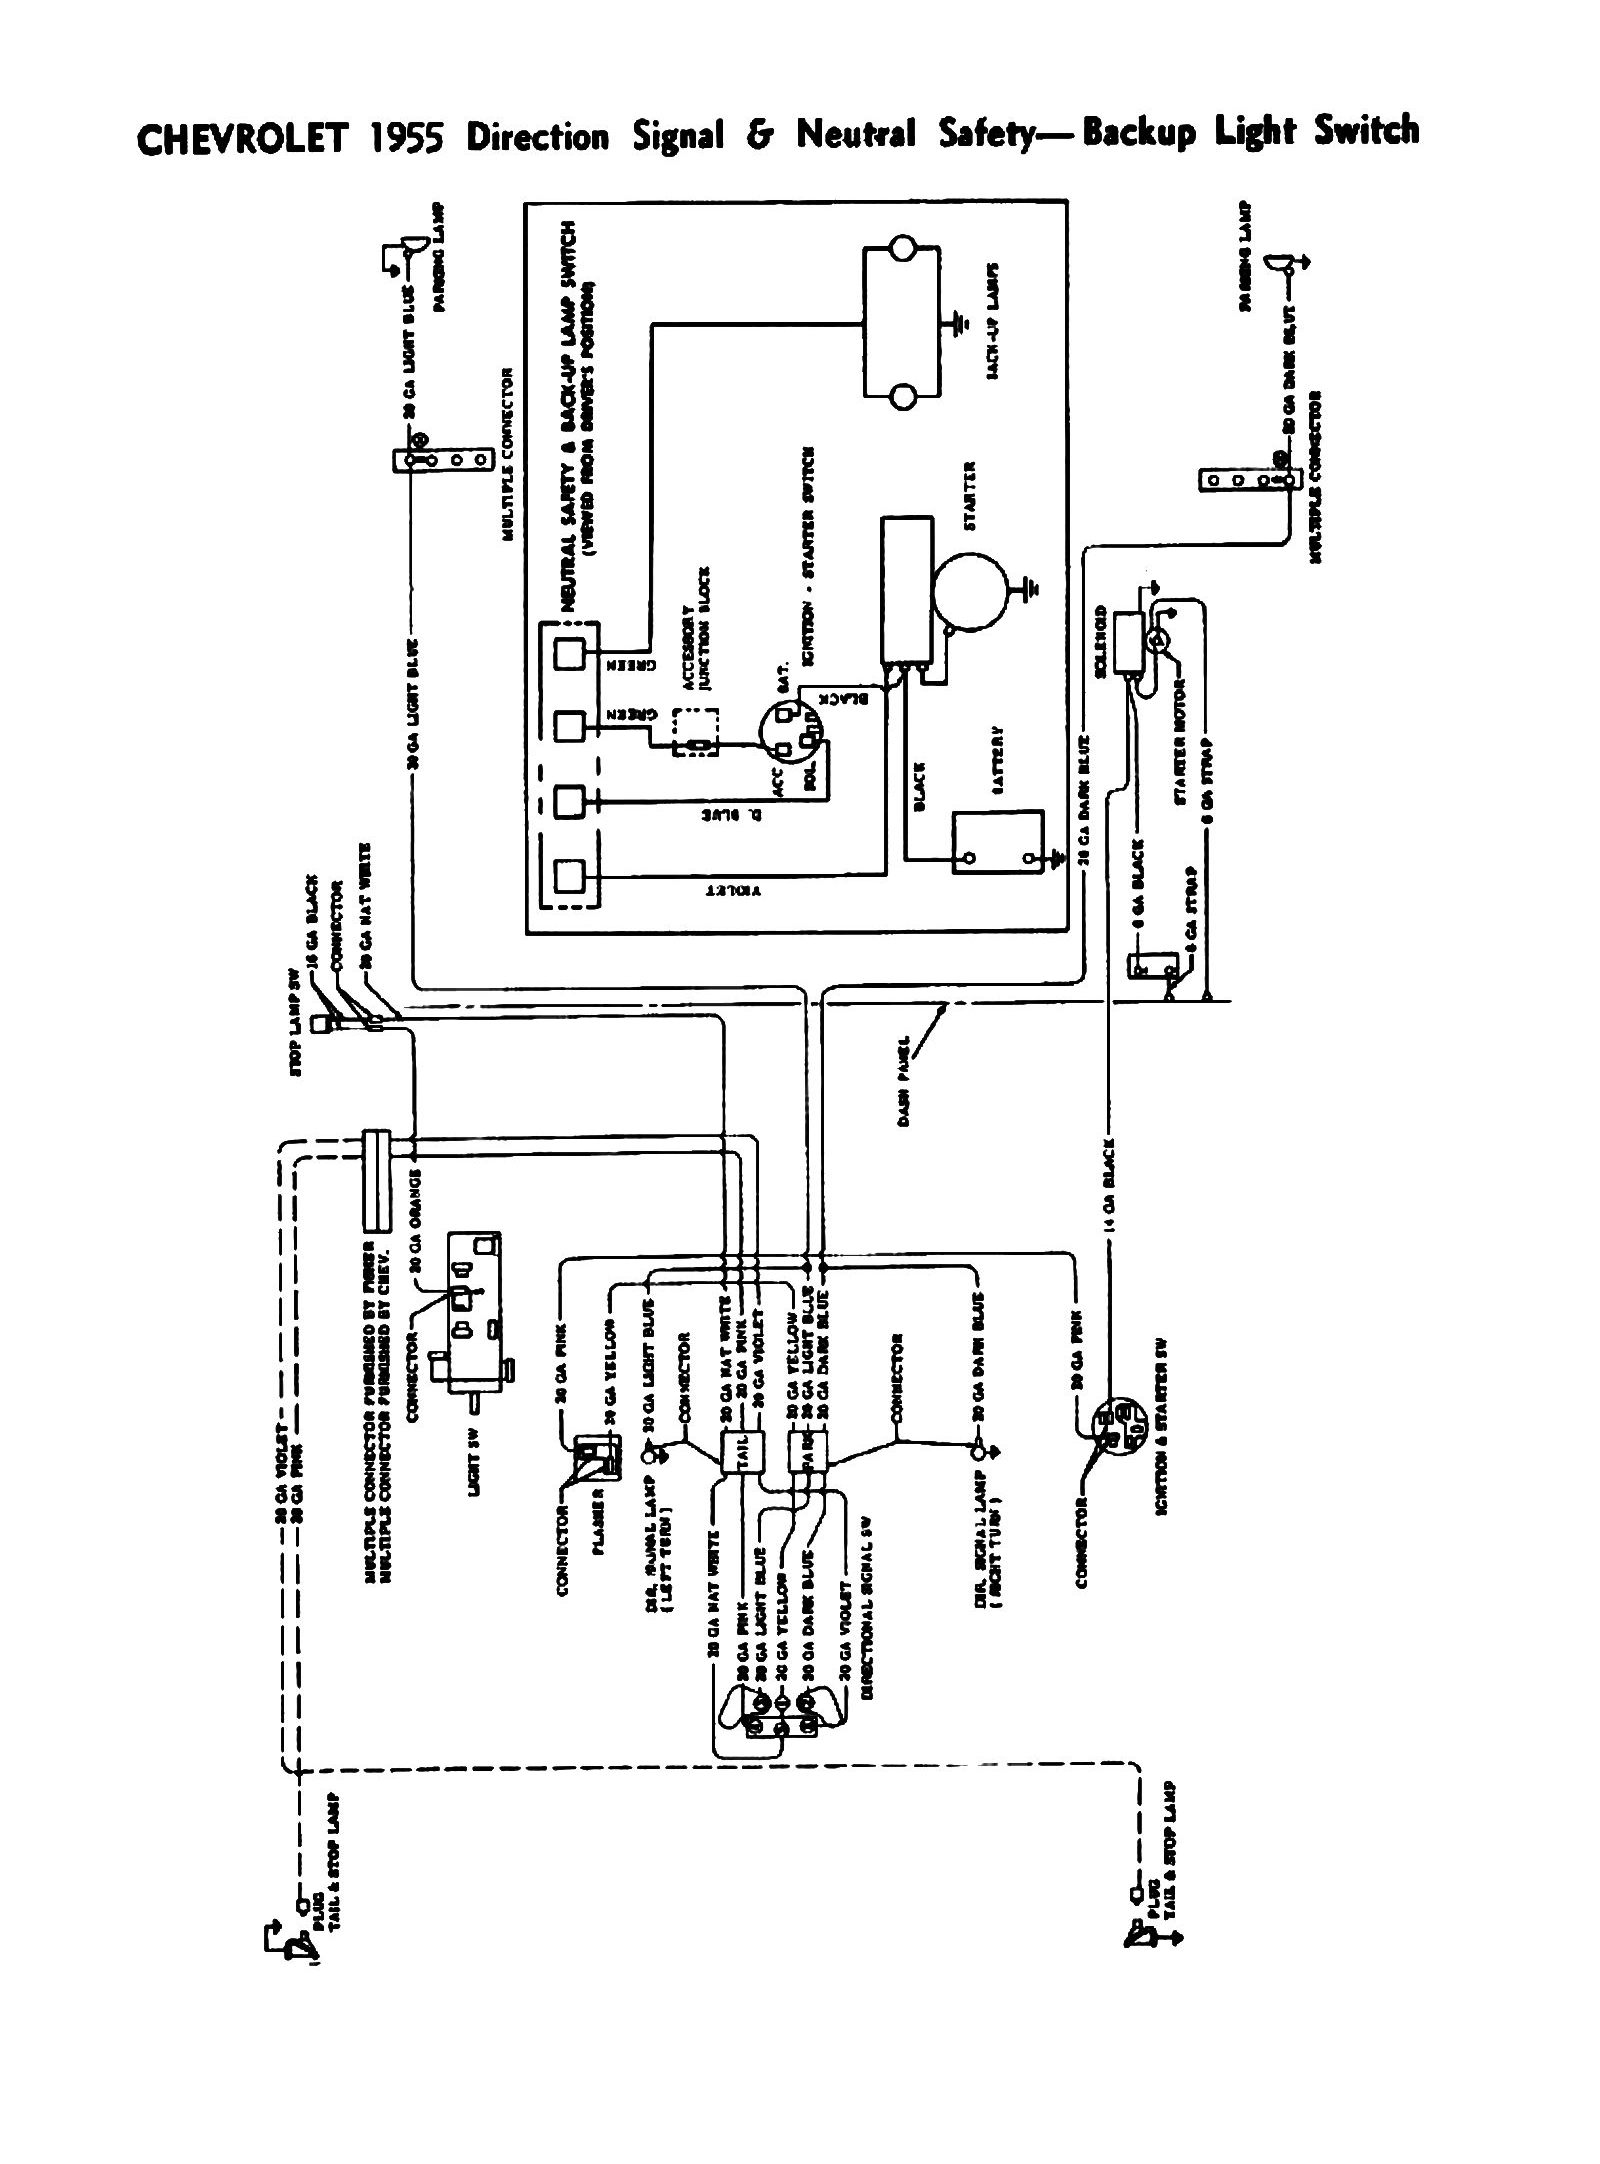 55signal 1996 chevy truck wiring diagram 1996 corvette wiring diagram 1998 chevy suburban ignition wiring diagram at n-0.co